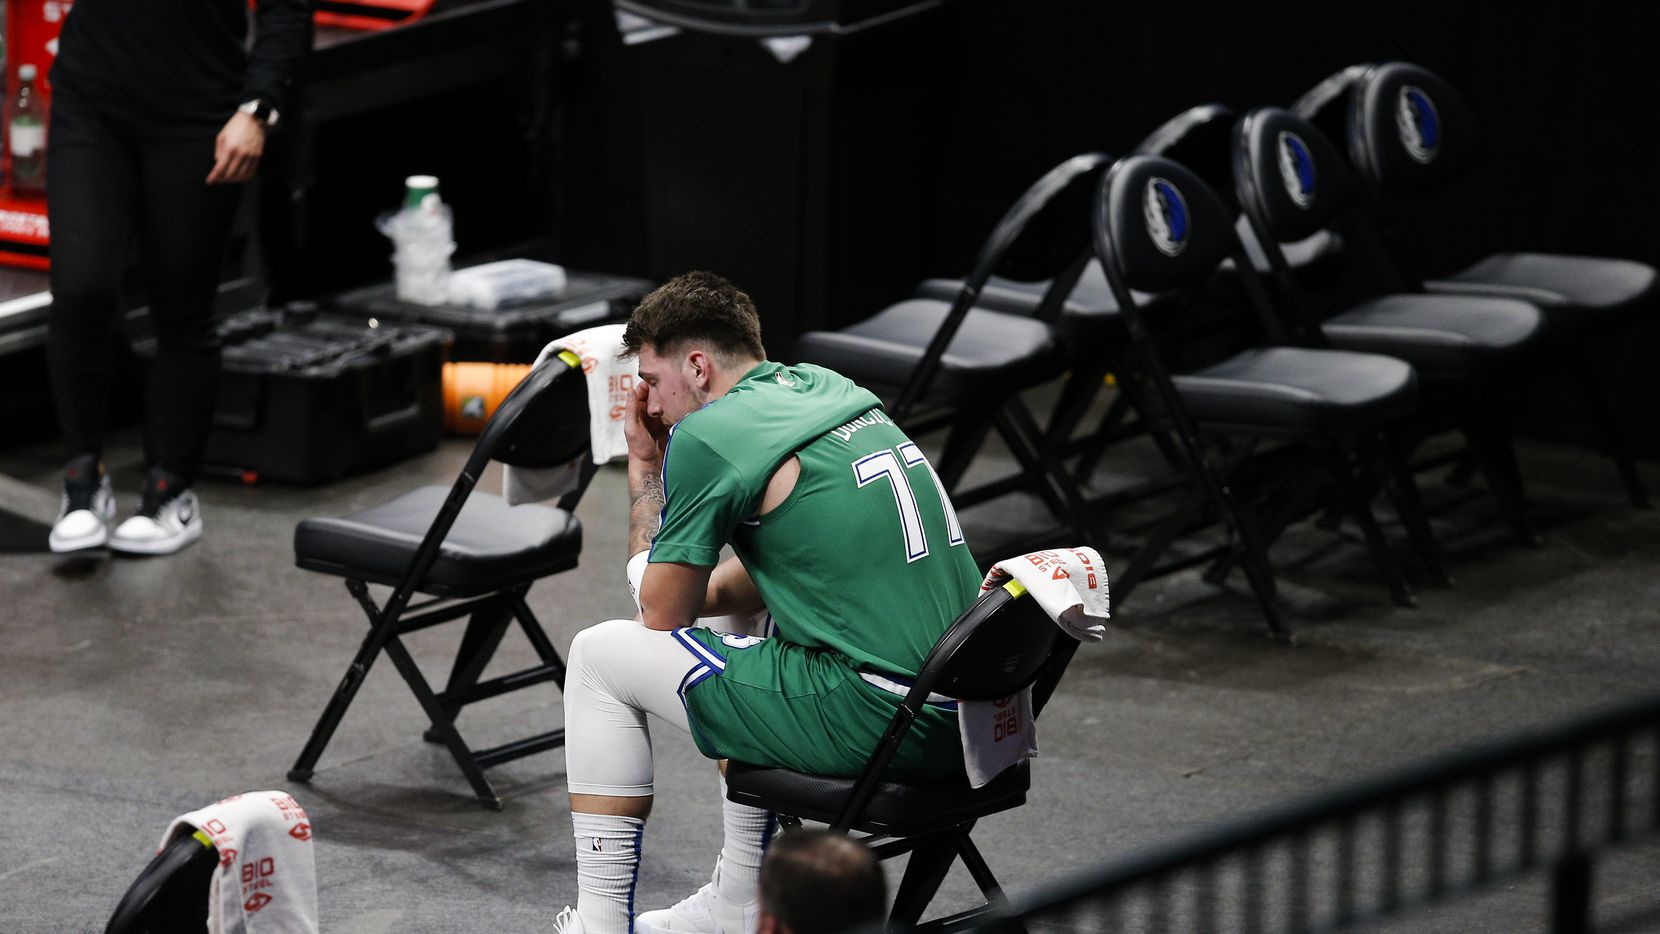 Dallas Mavericks guard Luka Doncic (77) looks on from the bench after committing a technical foul during the first half of an NBA basketball game against the Phoenix Suns in Dallas, Saturday, January 30, 2021.